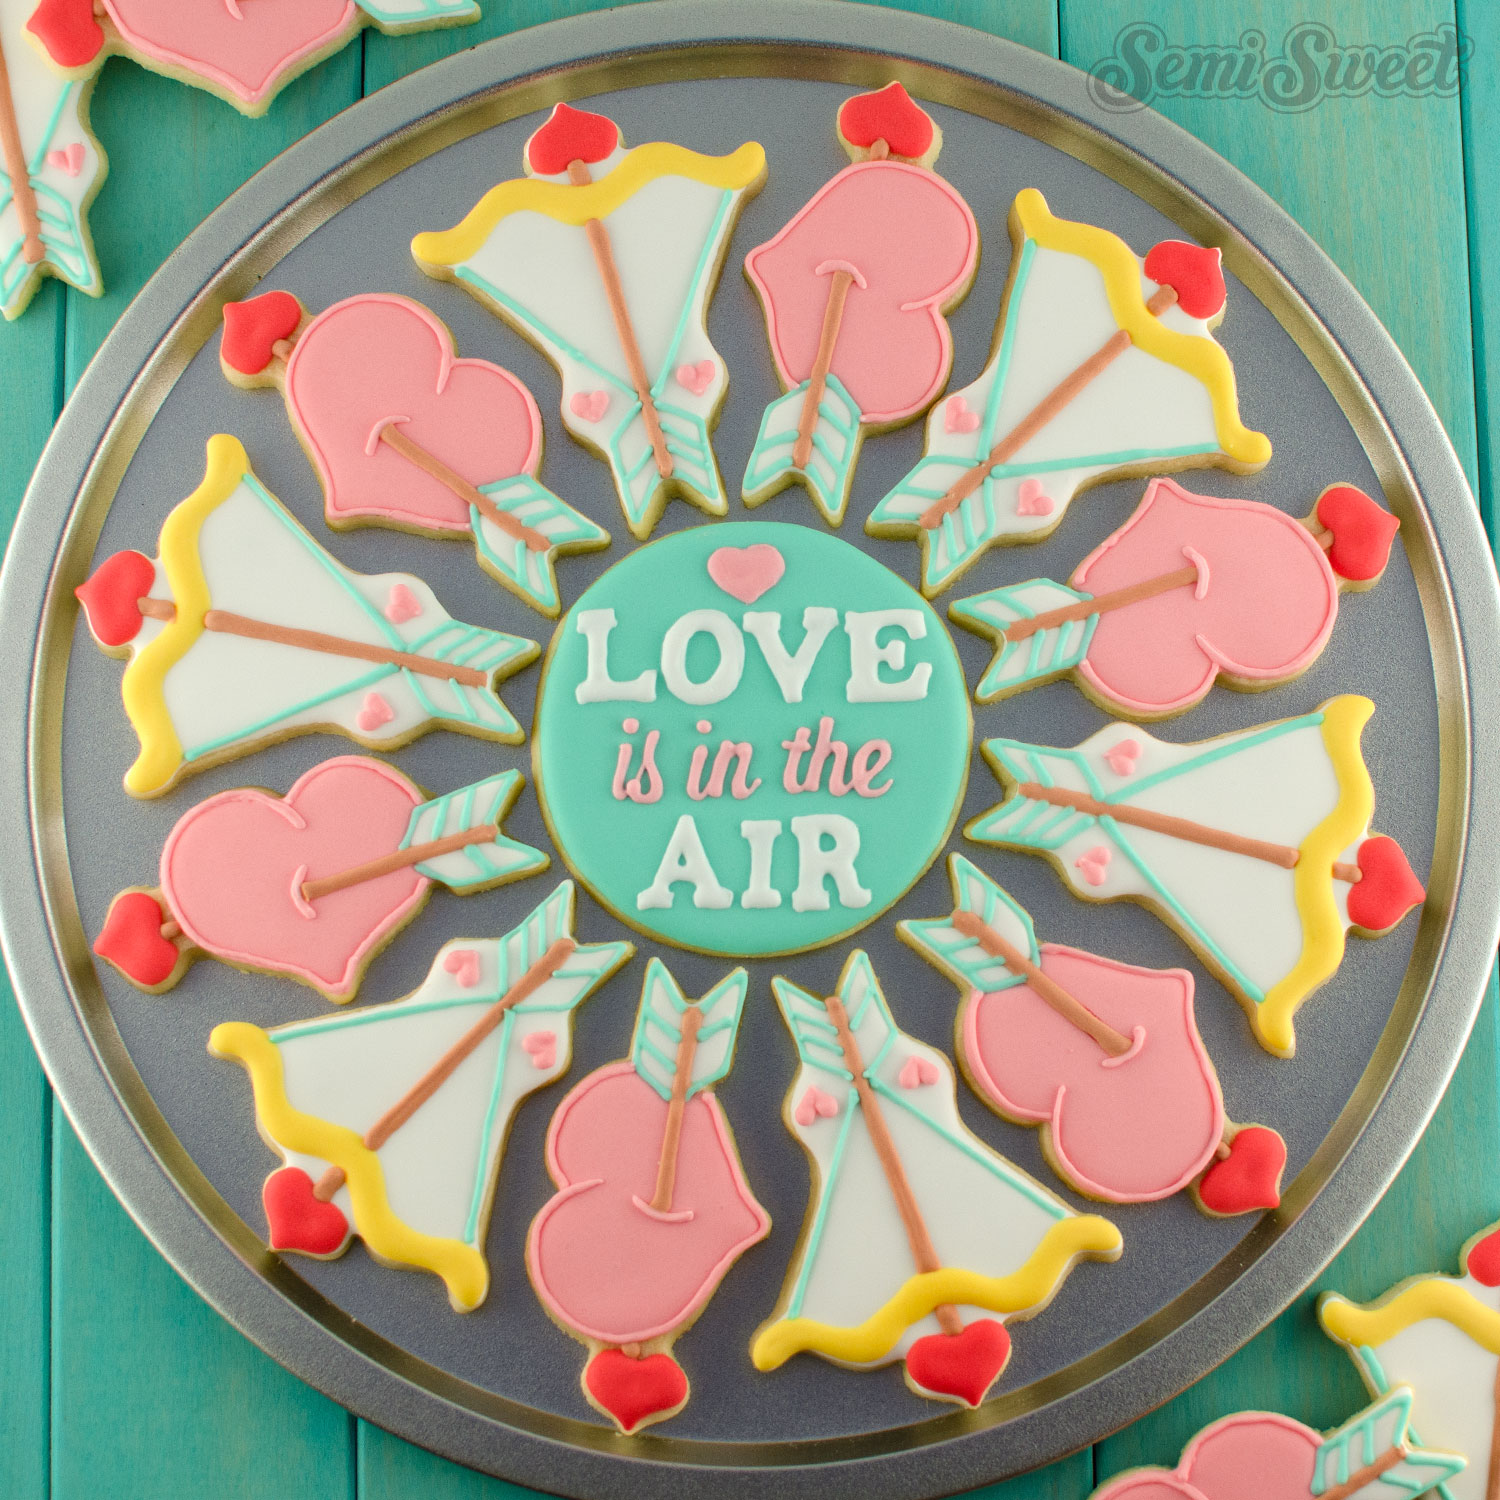 How to Make a Hearts and Arrows Valentine Cookie Platter